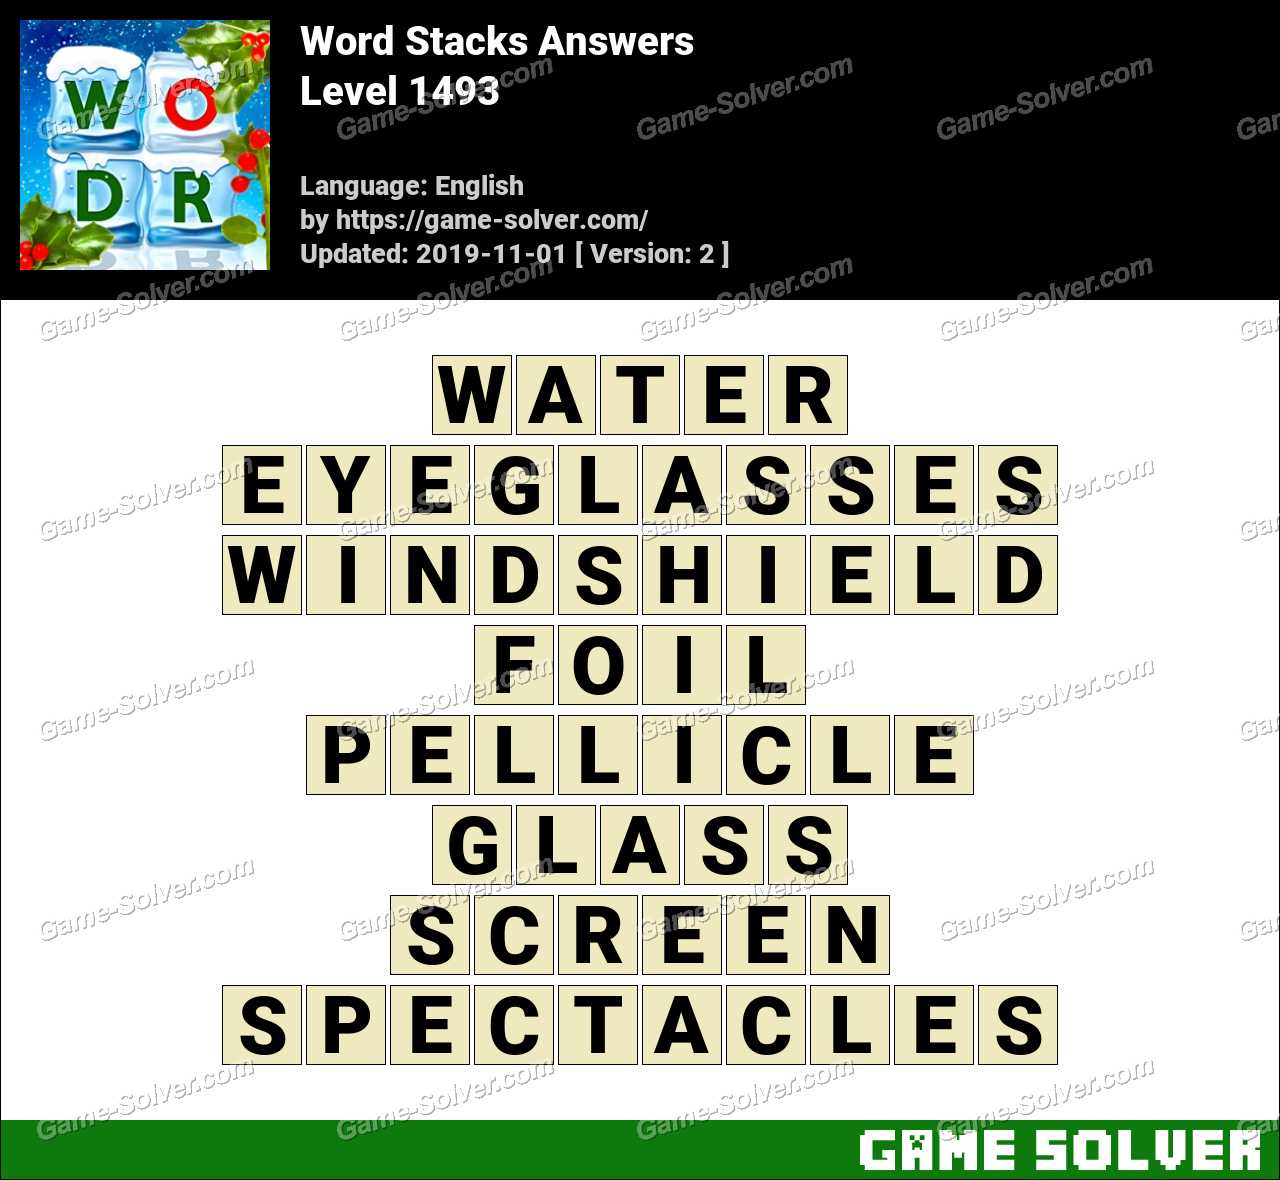 Word Stacks Level 1493 Answers